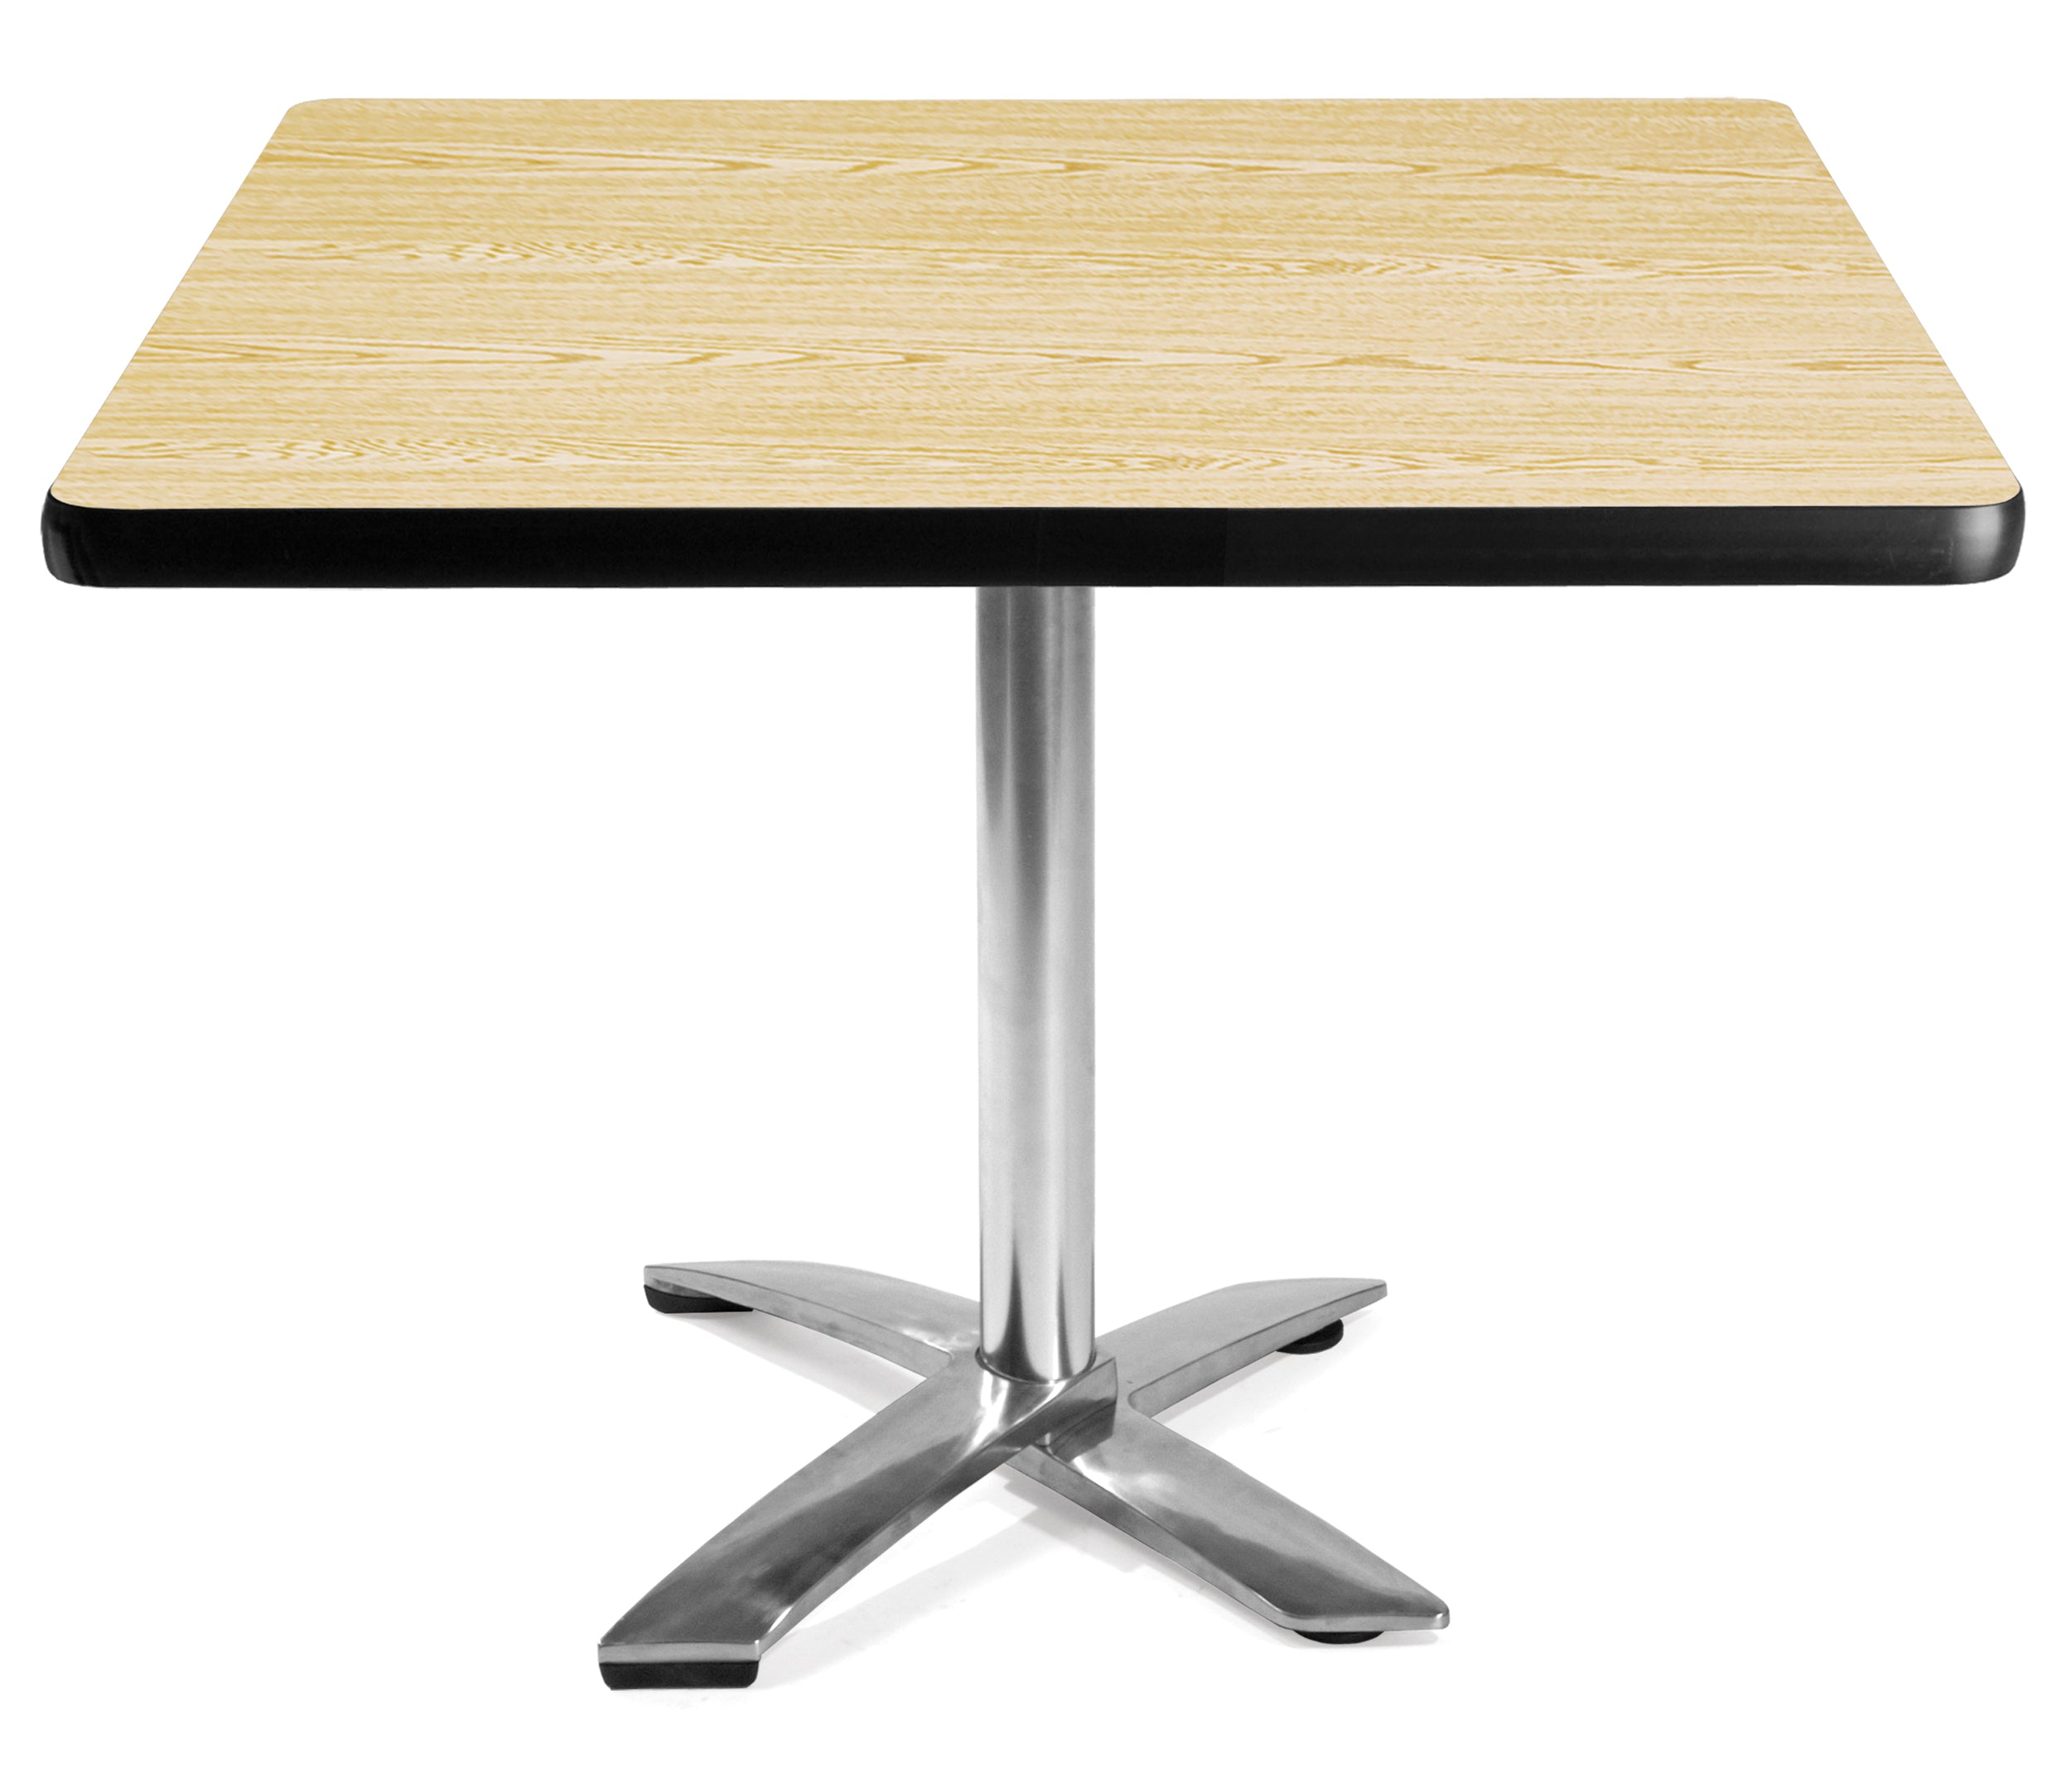 Ofminc Model FT42SQ 42 Inch Square Flip-Top Multi-Purpose Table